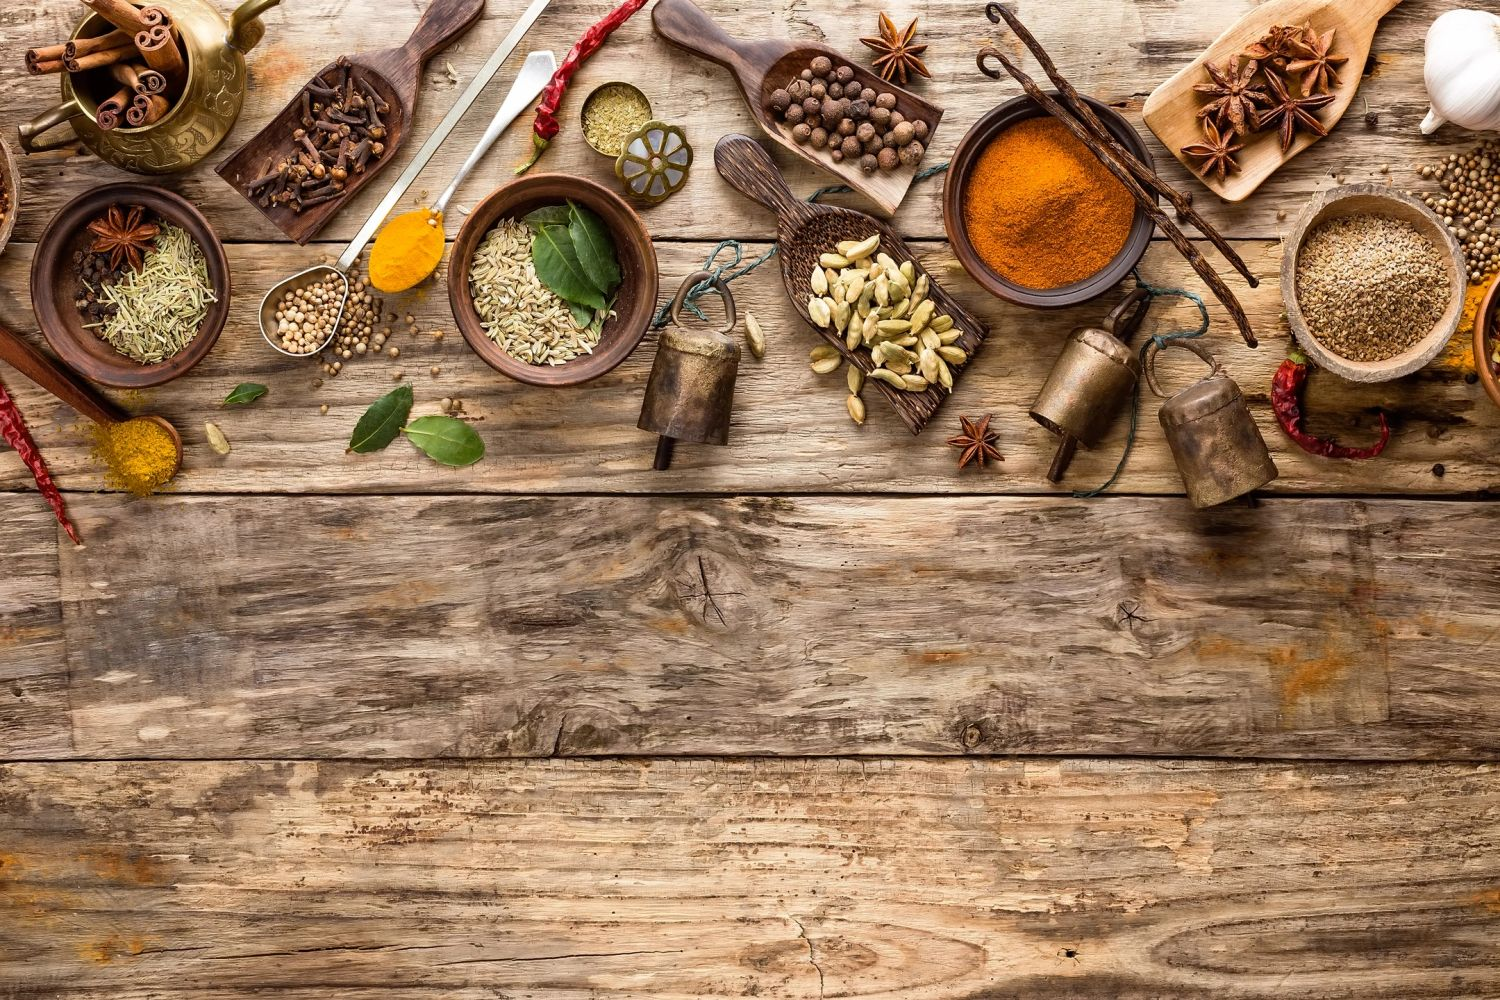 herbal remedies, herbs, spices, plants, healing plants